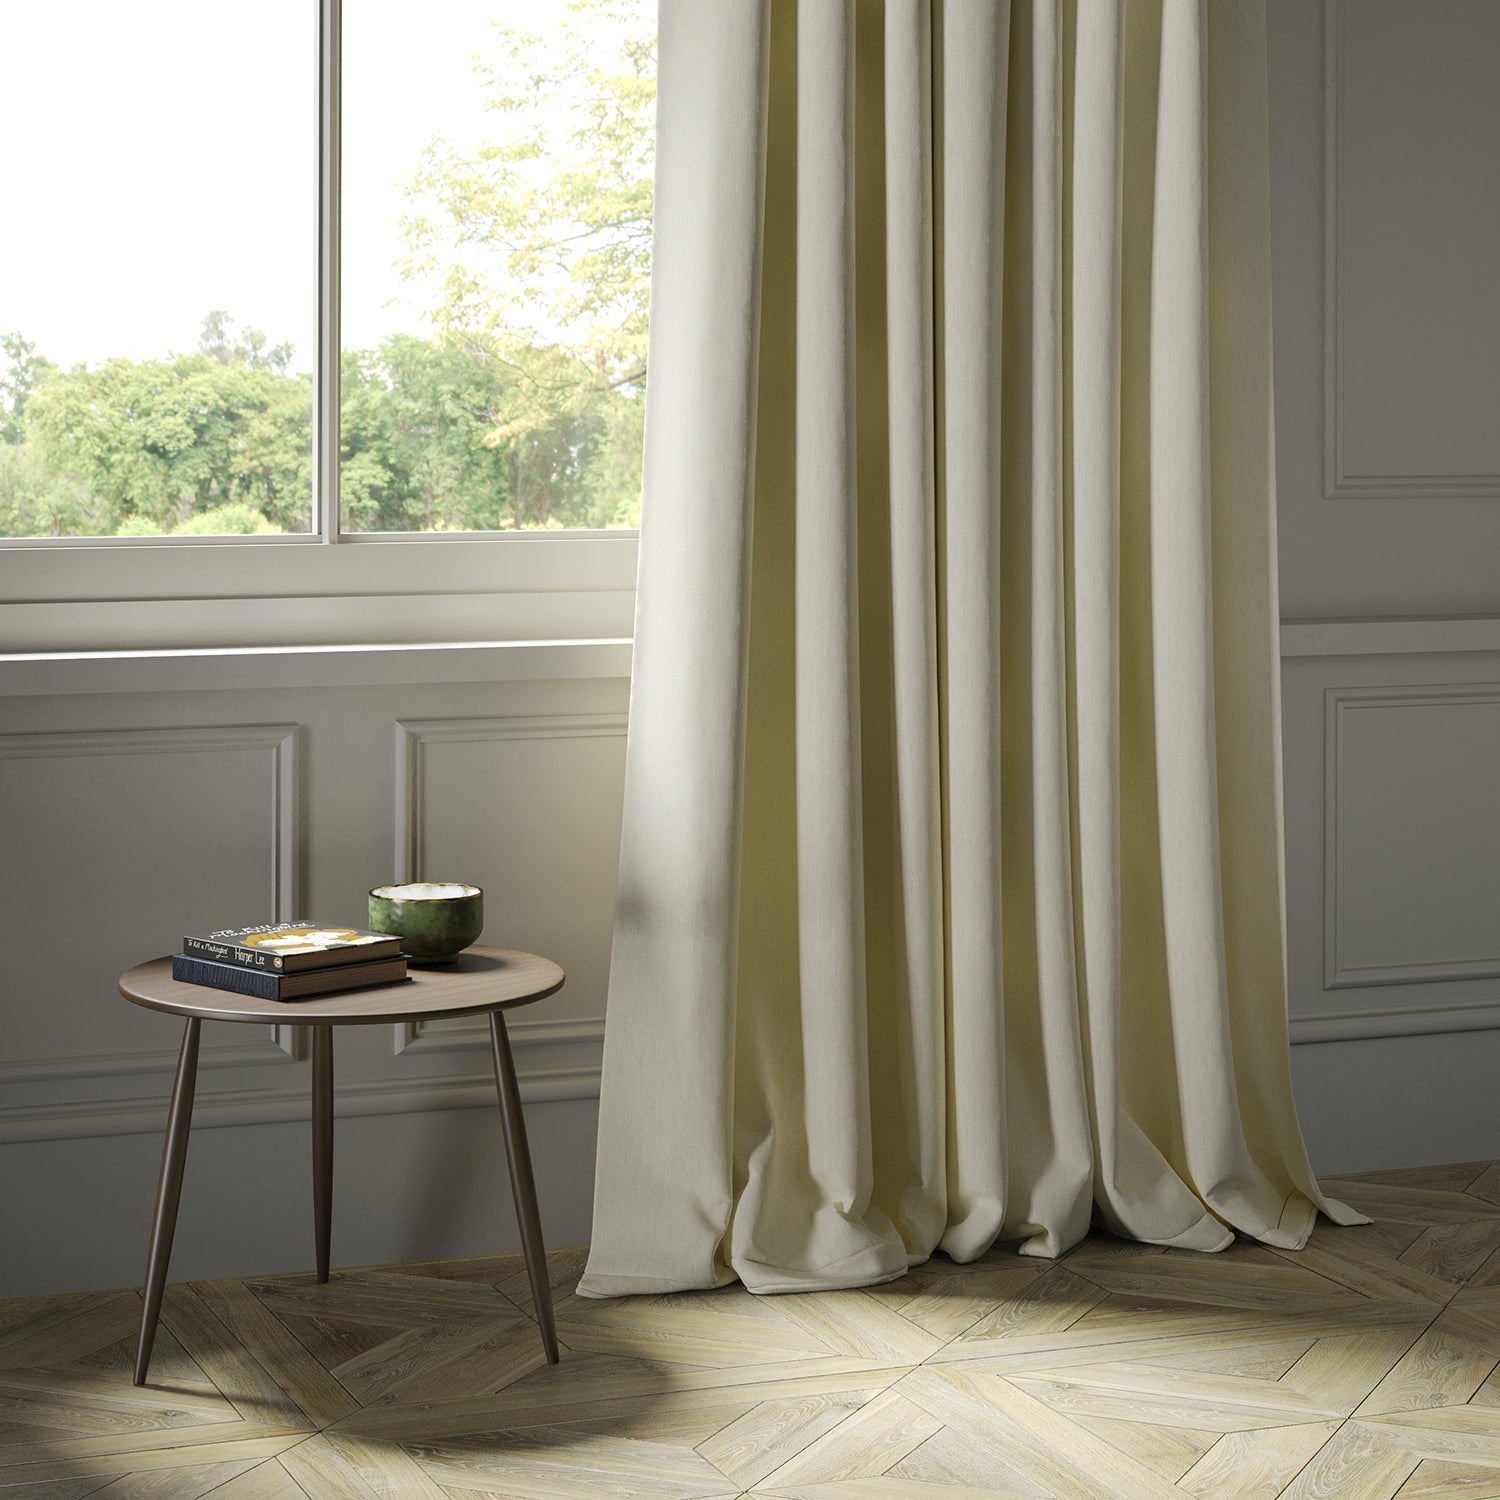 Curtains in a luxury Scottish cream wool herringbone fabric